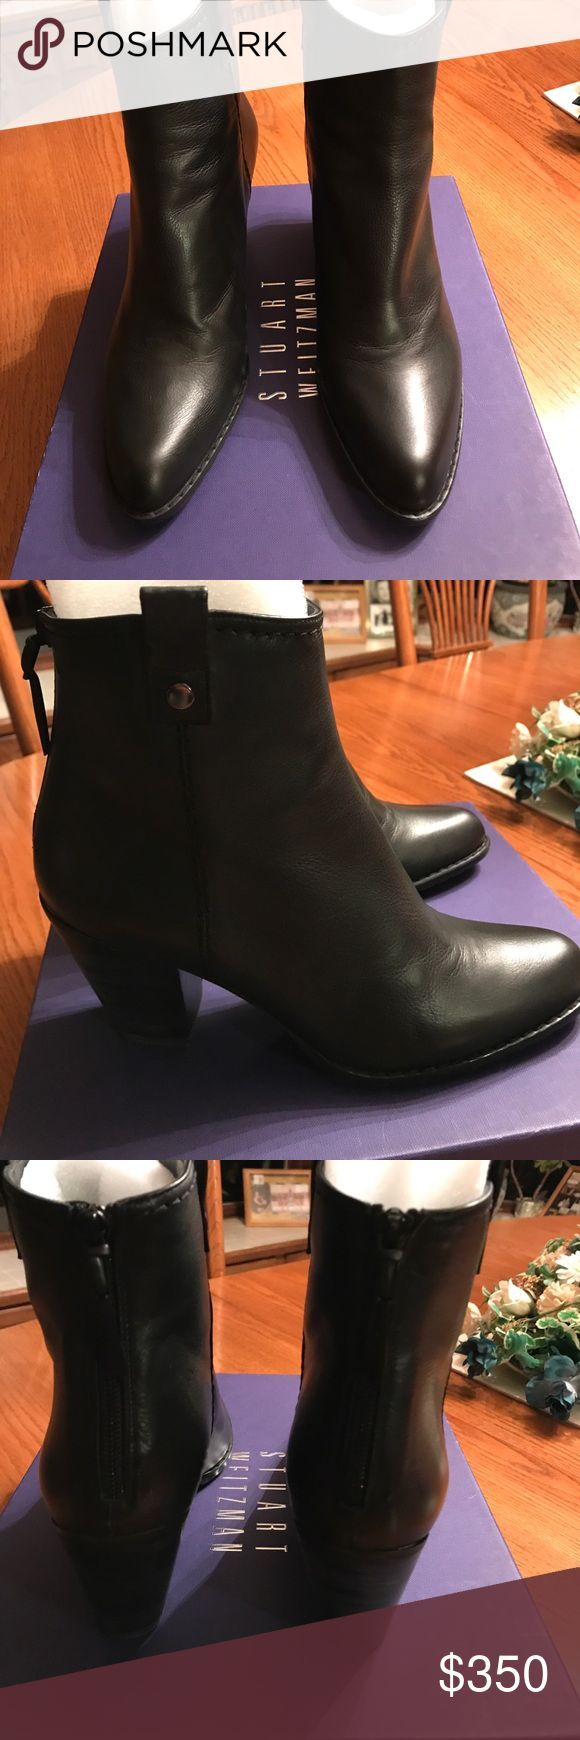 Stuart Weitzman boots Beautiful SW black leather boots! Heel approximately 3 inches!  New, never worn! Back zippers for easy pull on and off! Stuart Weitzman Shoes Ankle Boots & Booties